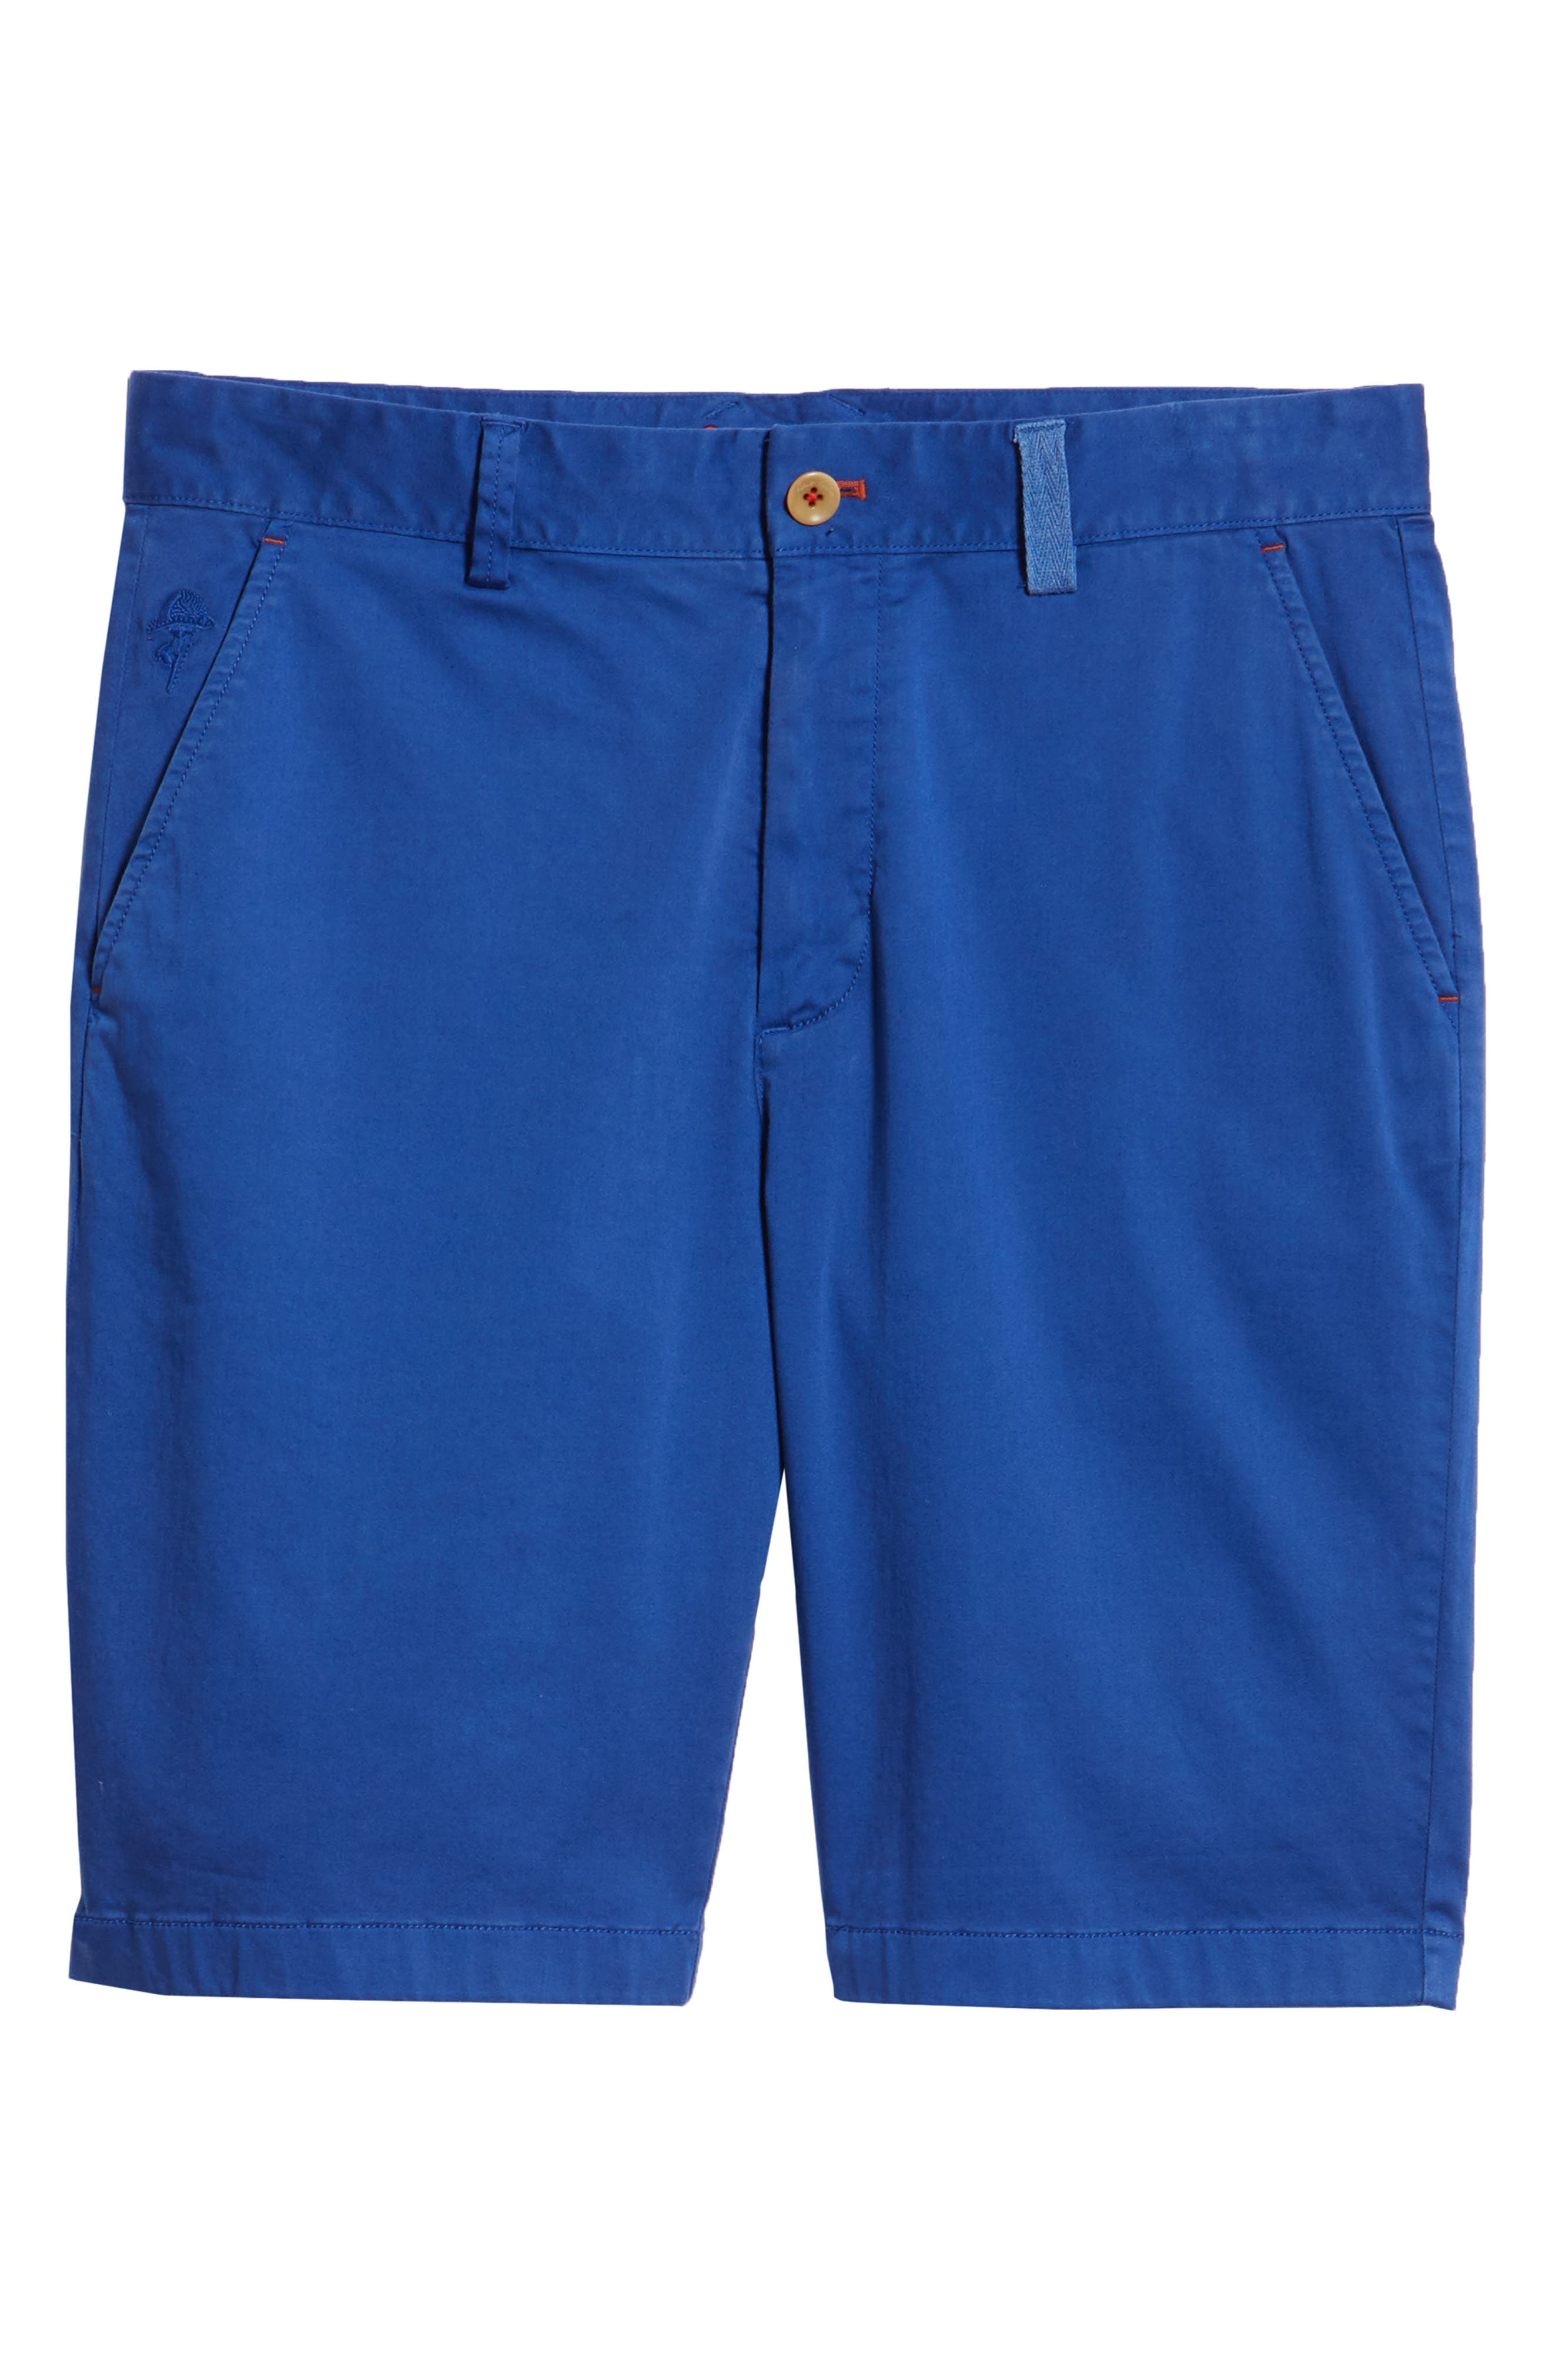 Pioneer Shorts,                             Alternate thumbnail 6, color,                             SAPPHIRE